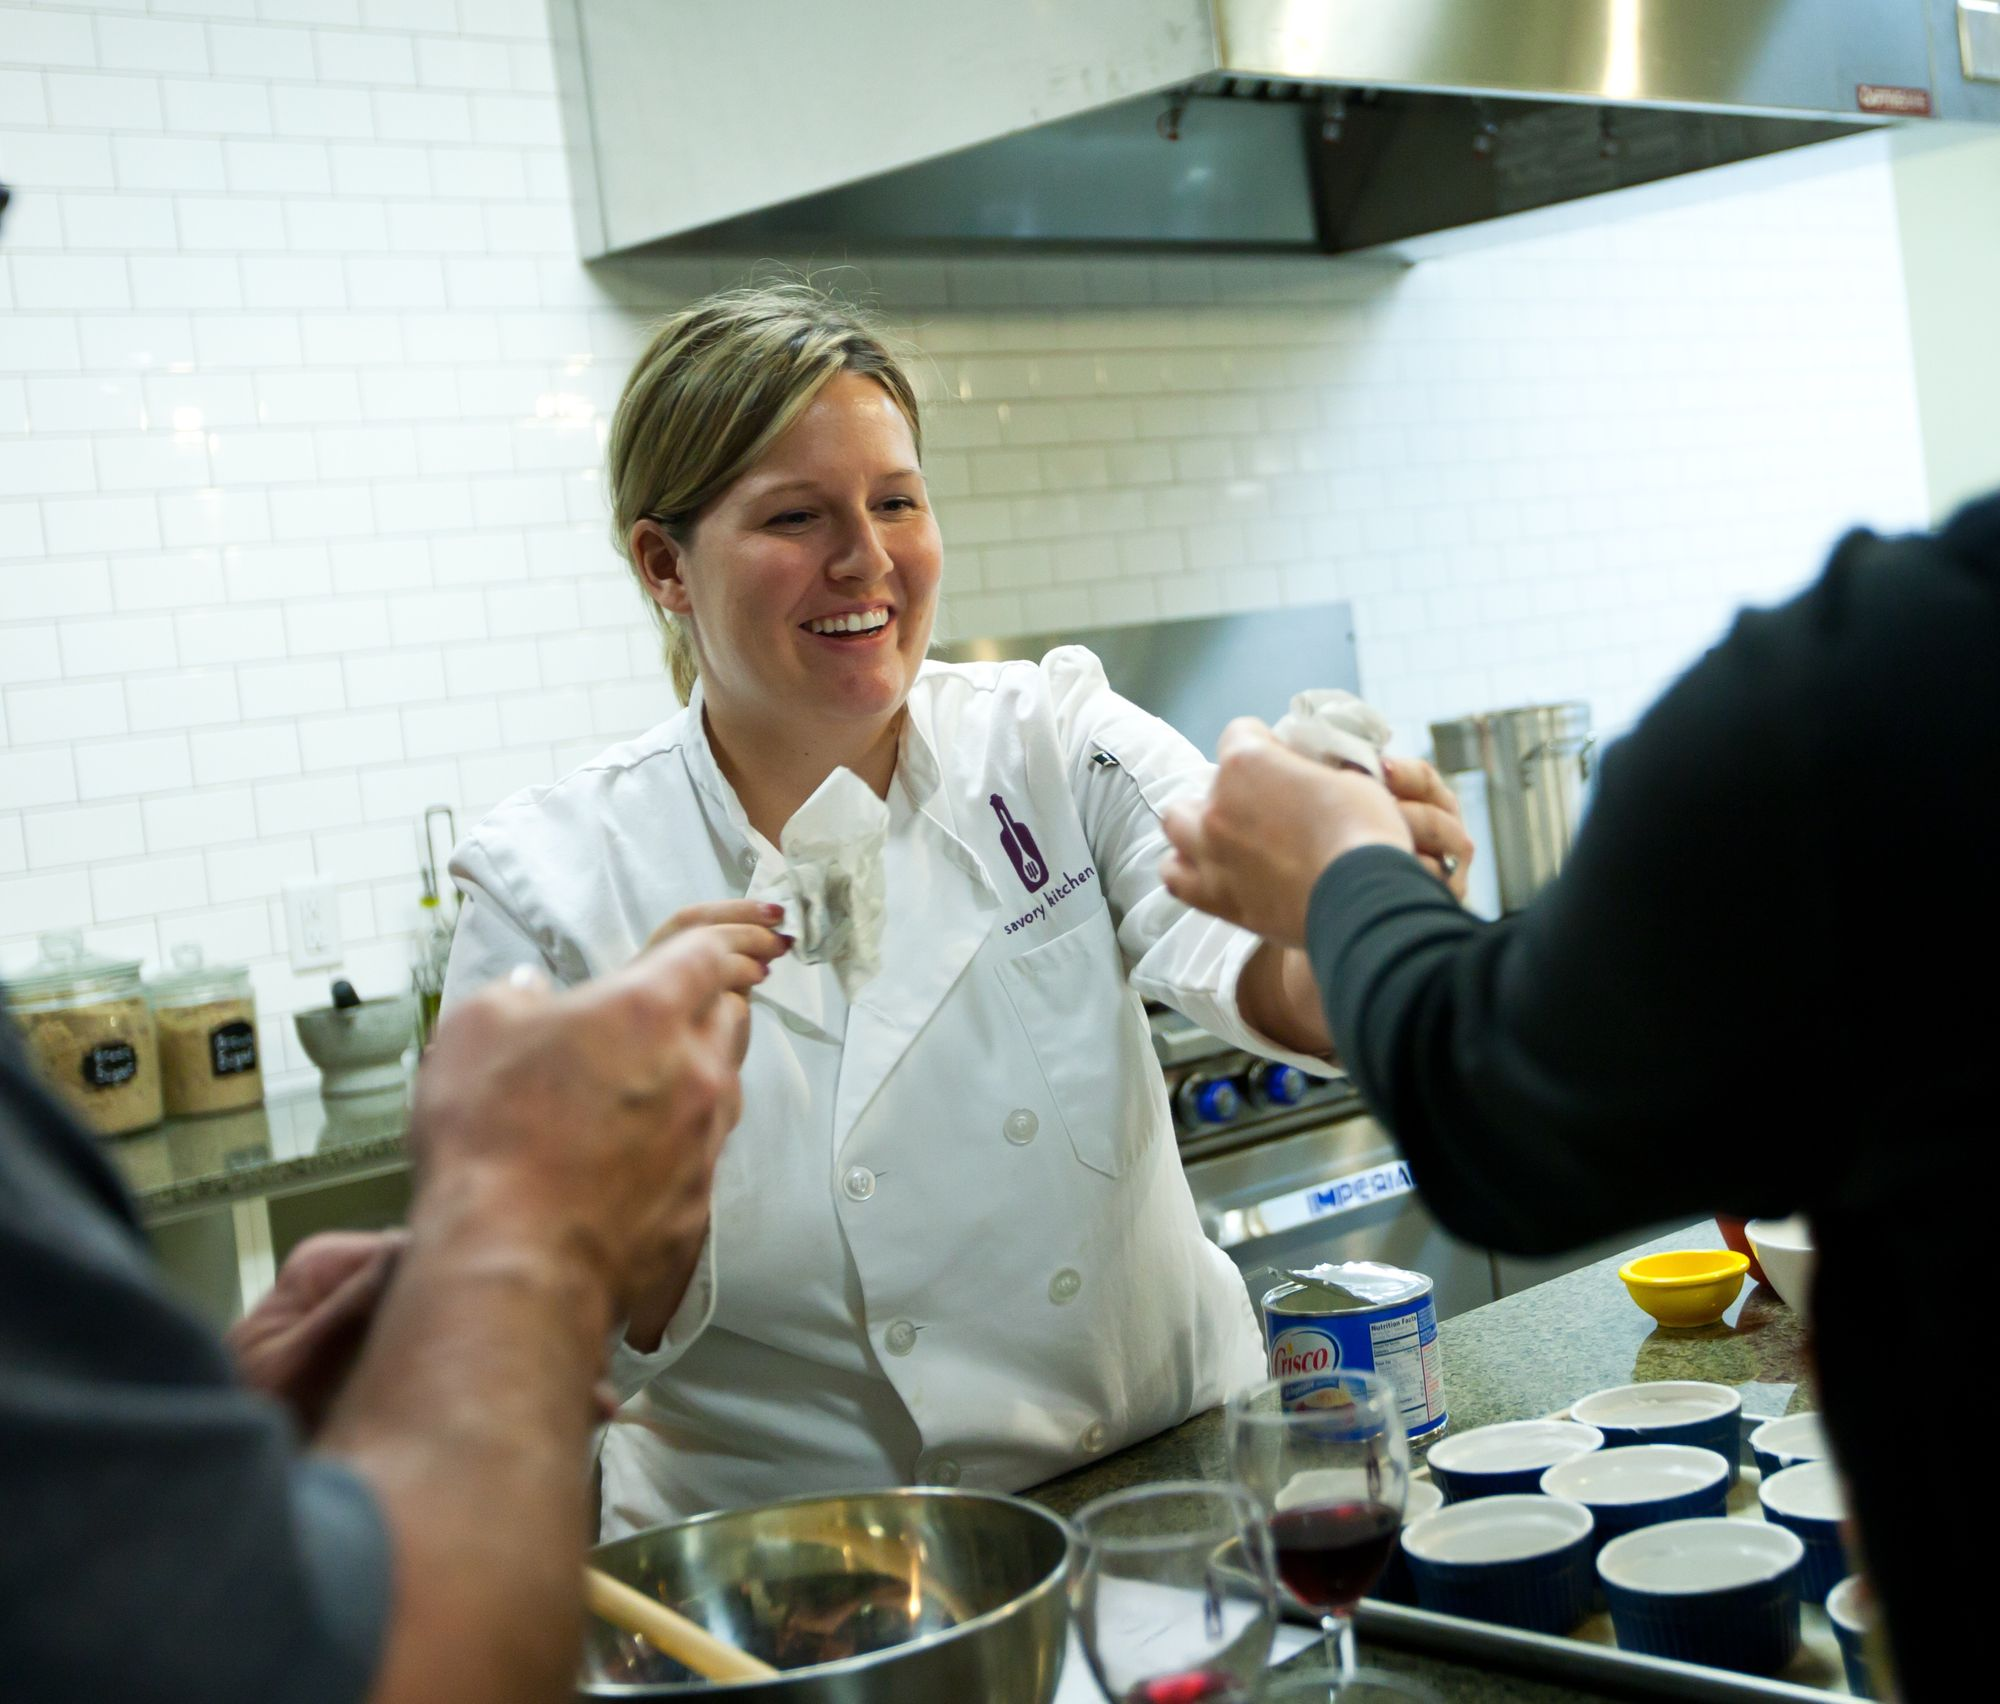 Teambuilding through cooking - Cultivate Kitchen